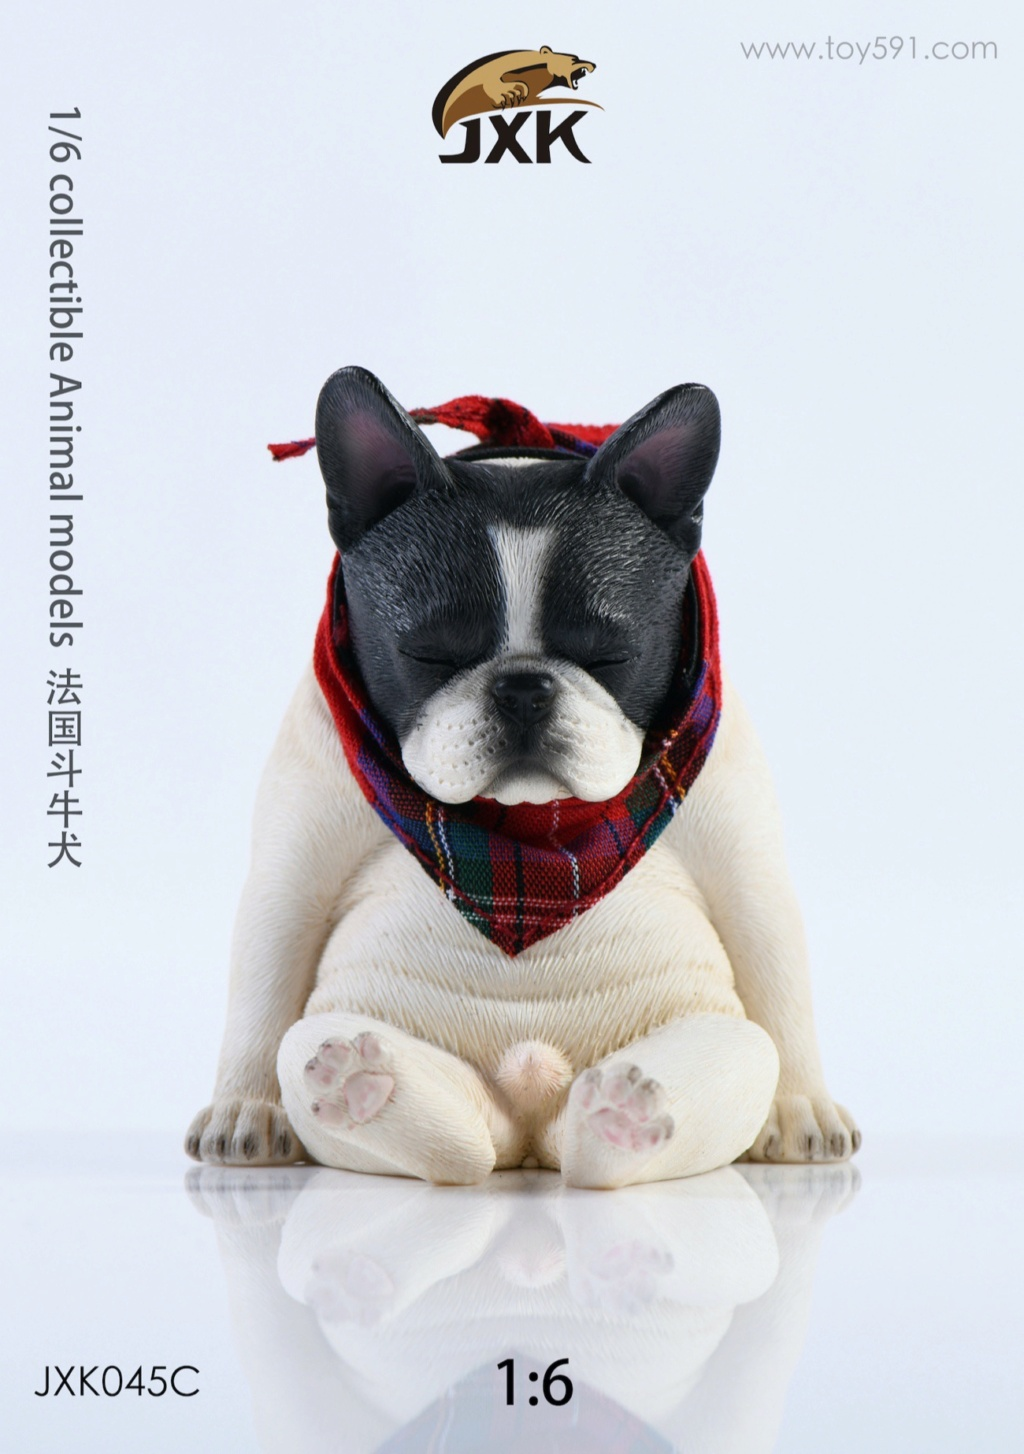 Dog - NEW PRODUCT: JXK 1/6 Decadent Dog JXK045 French Bulldog + Scarf 15adb910